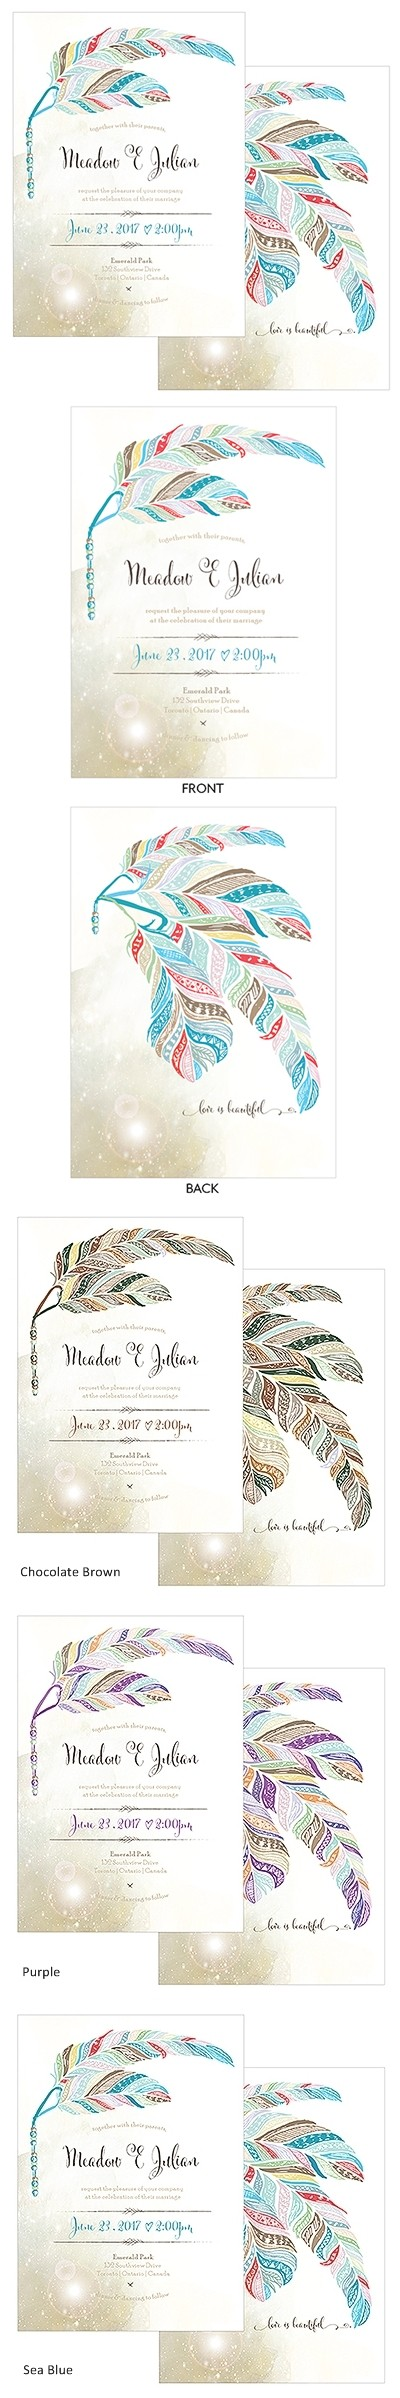 Cheapest Place Print Invitations